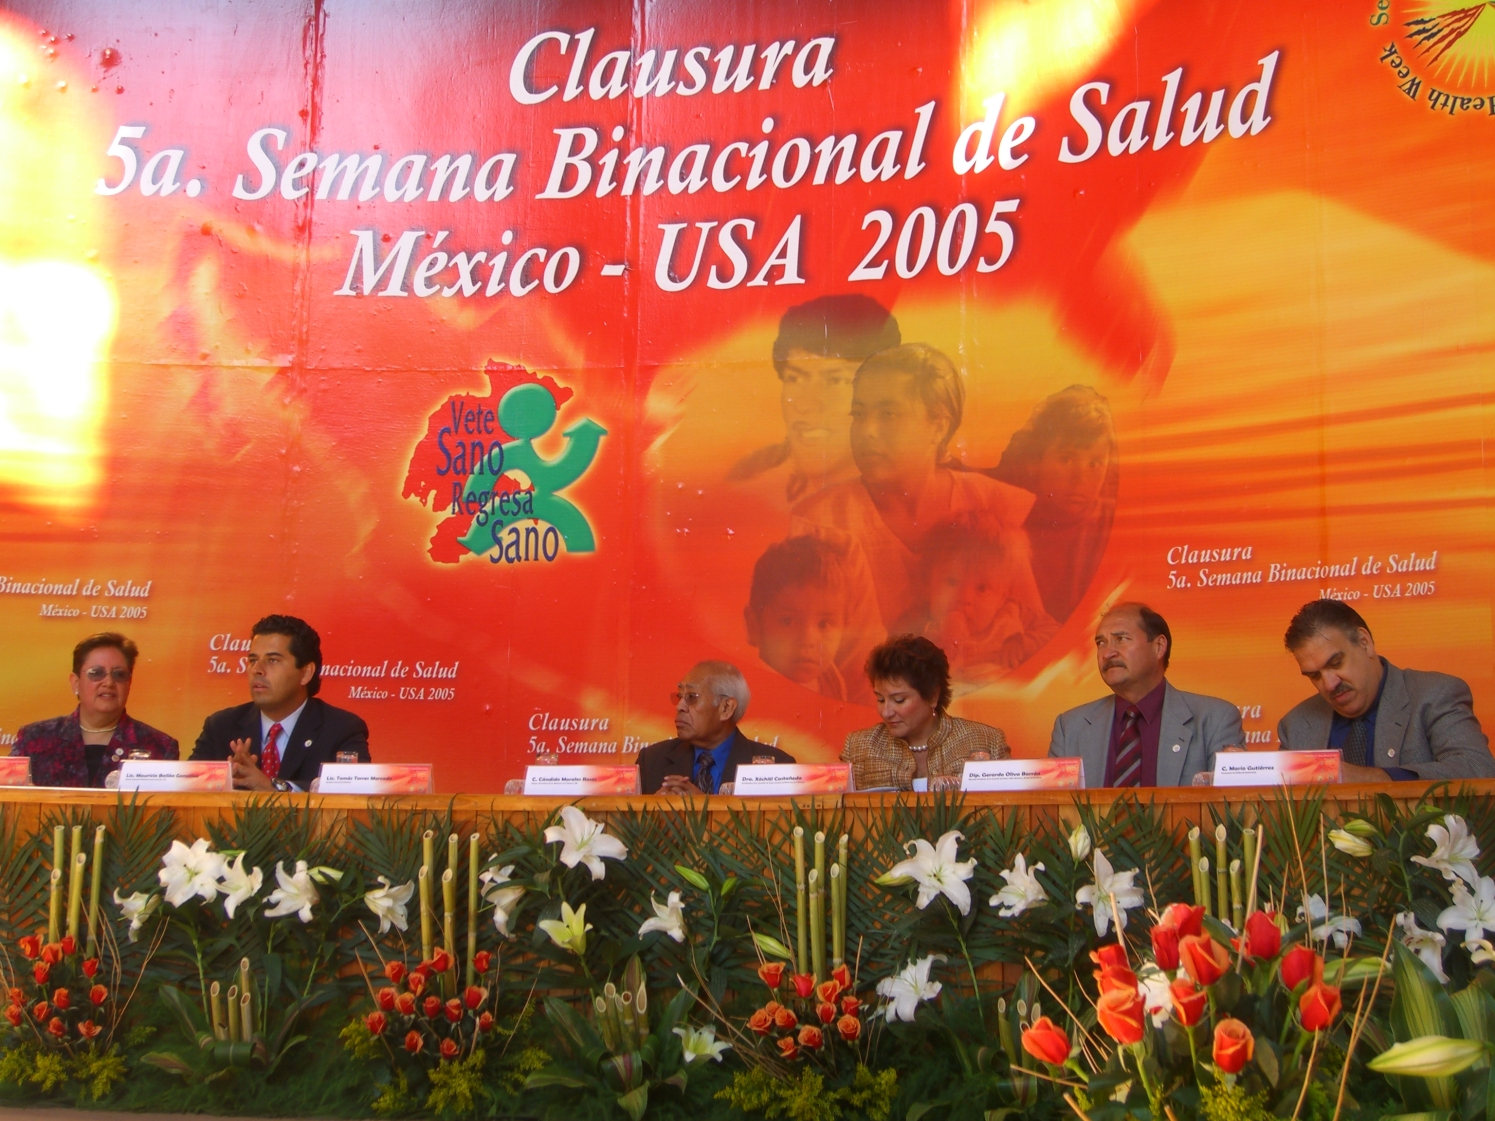 presidium Clausura SBS 2005 005